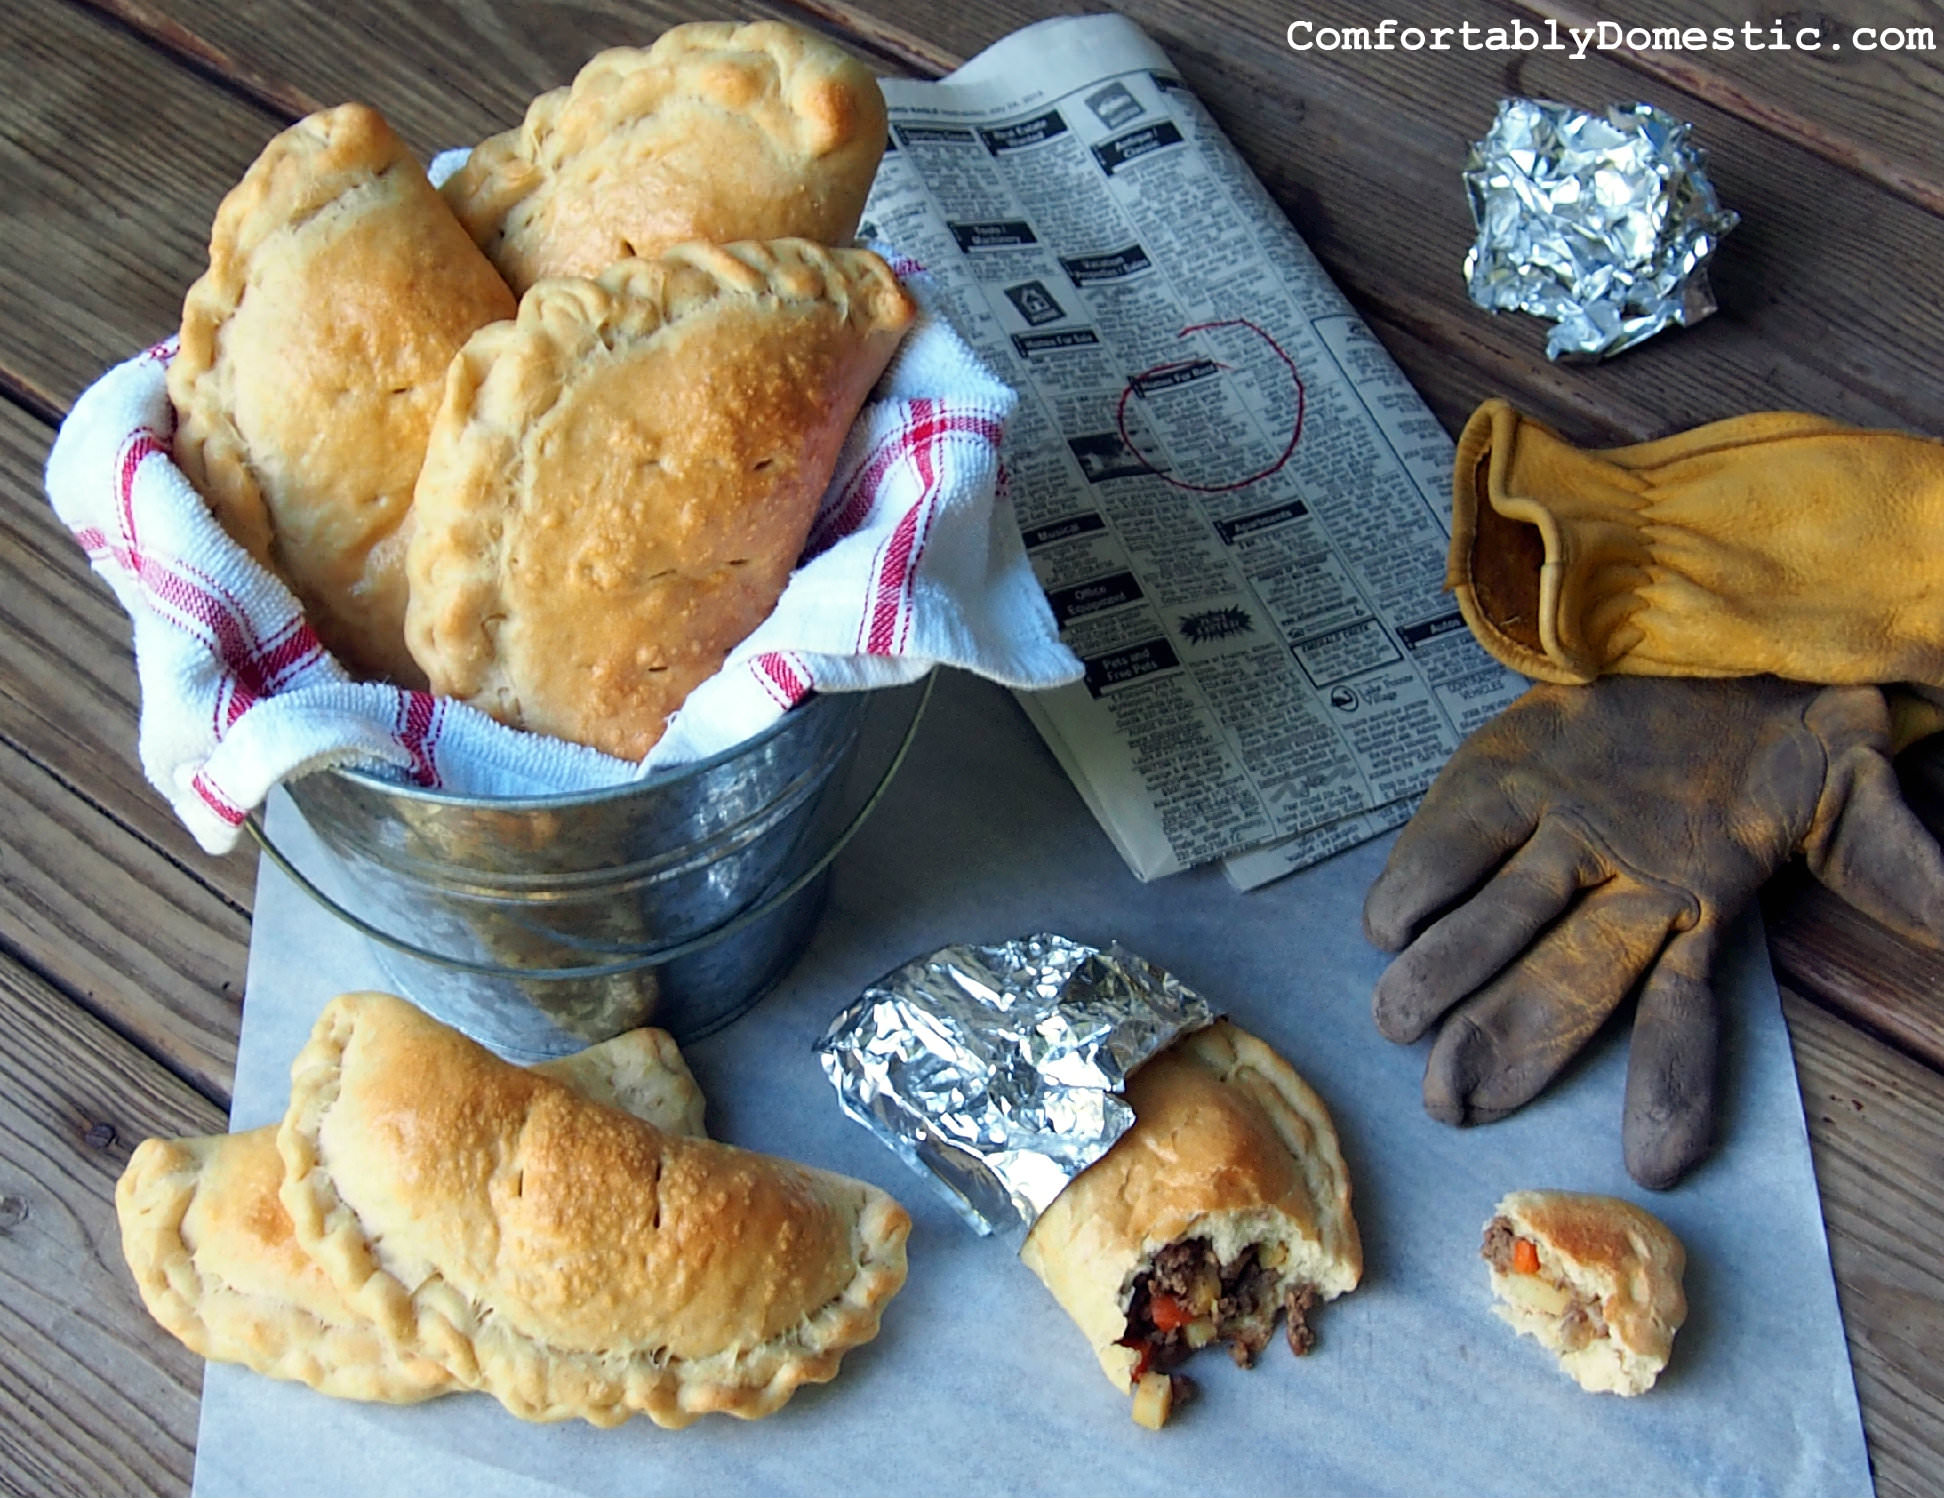 Lower Peninsula Pasty (Meat Pies) | ComfortablyDomestic.com